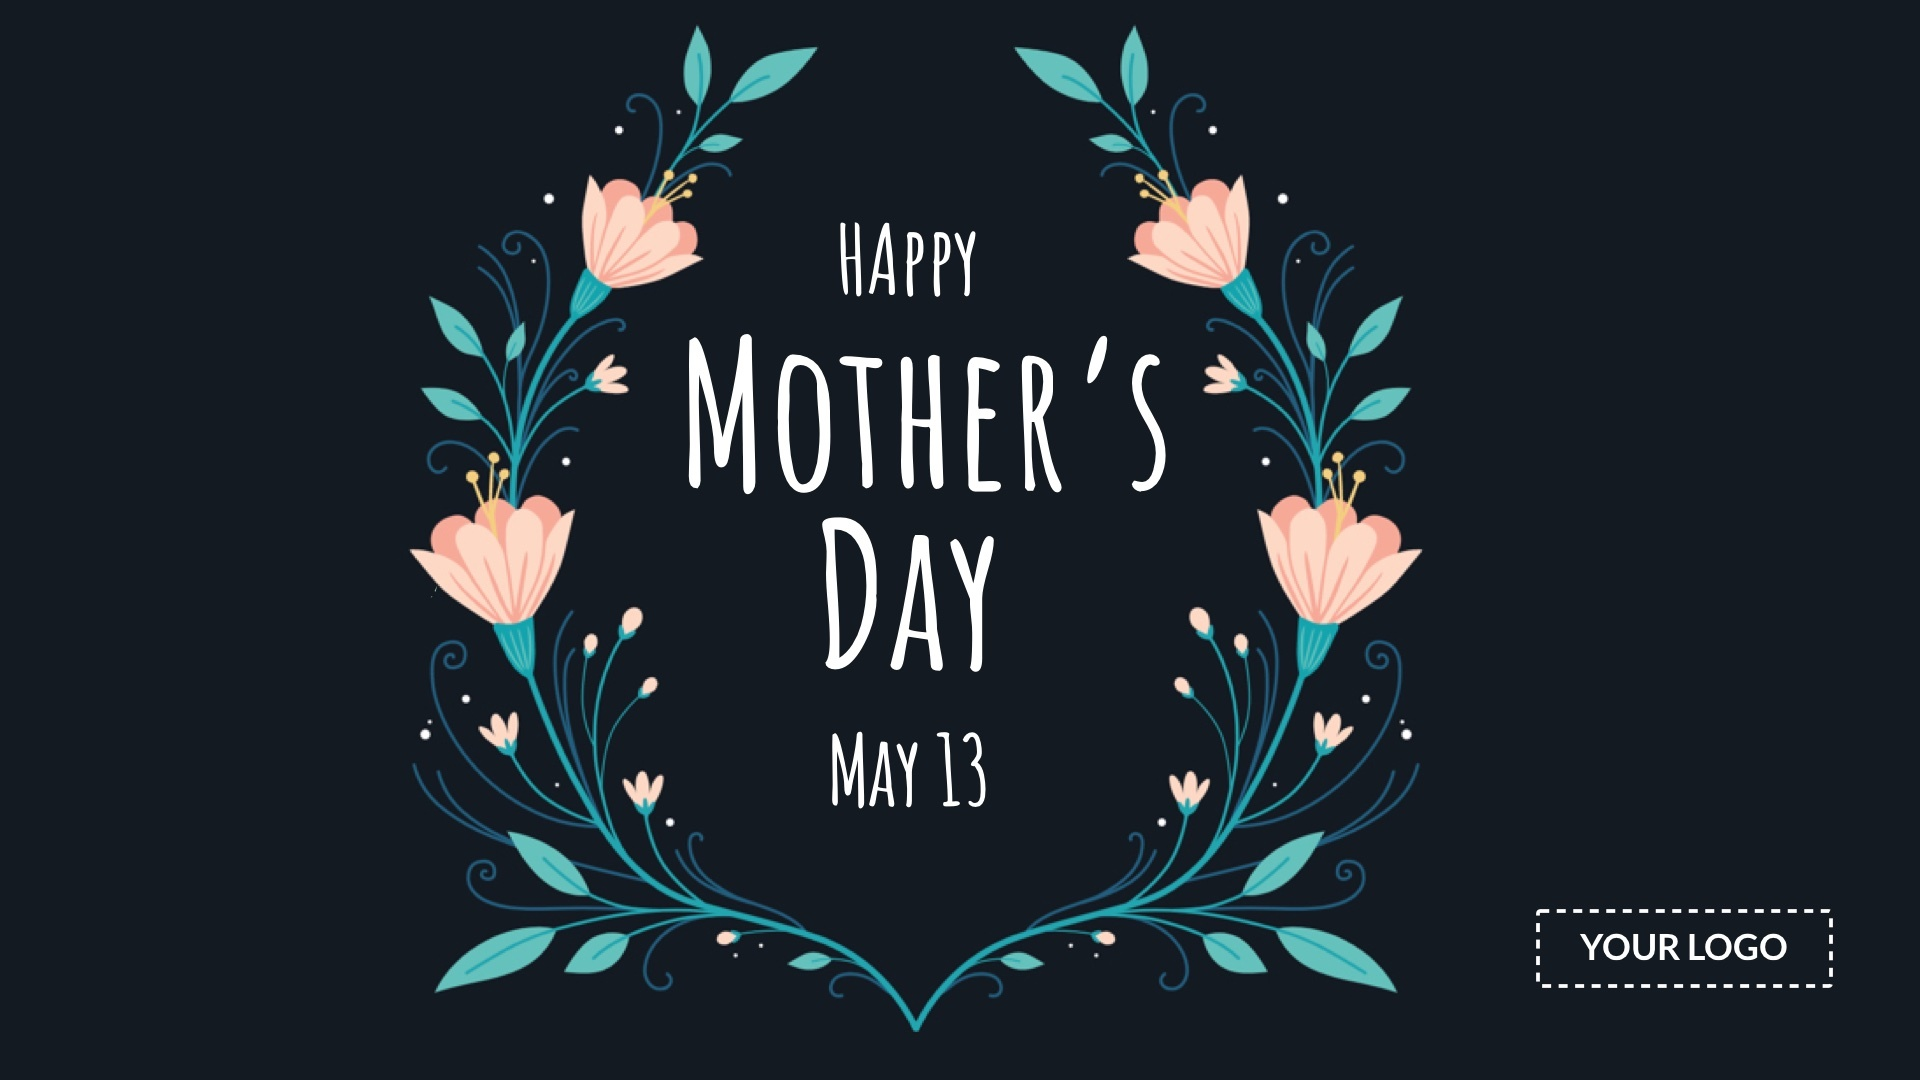 Mother's day for digital signage